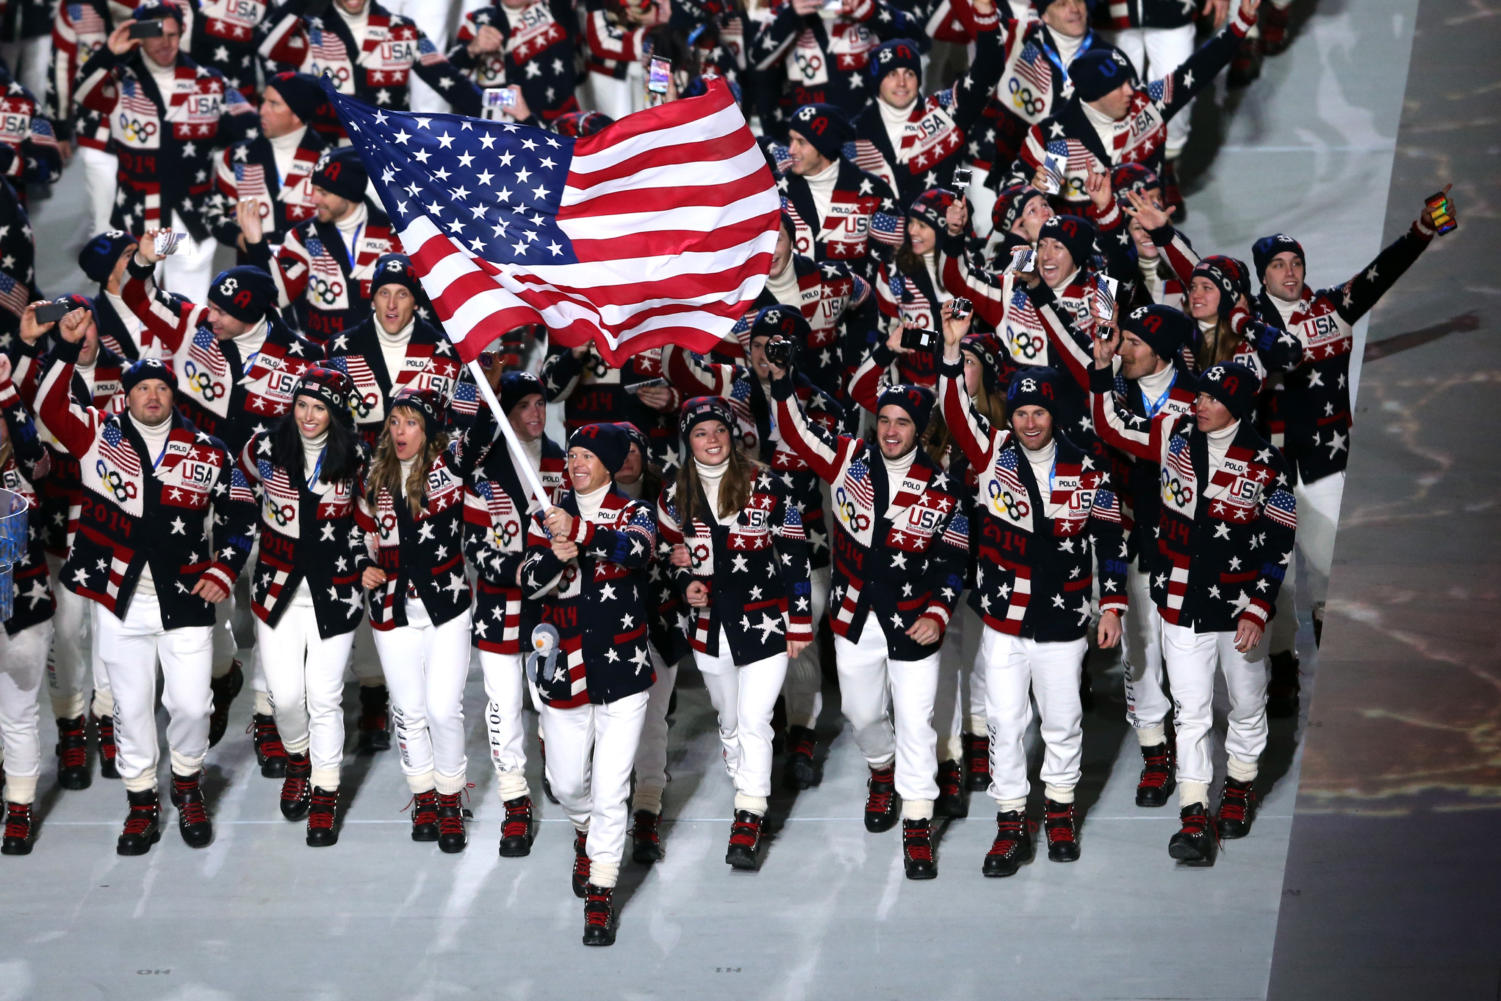 Team USA during the opening ceremony of the 2014 Winter Olympics in Sochi.